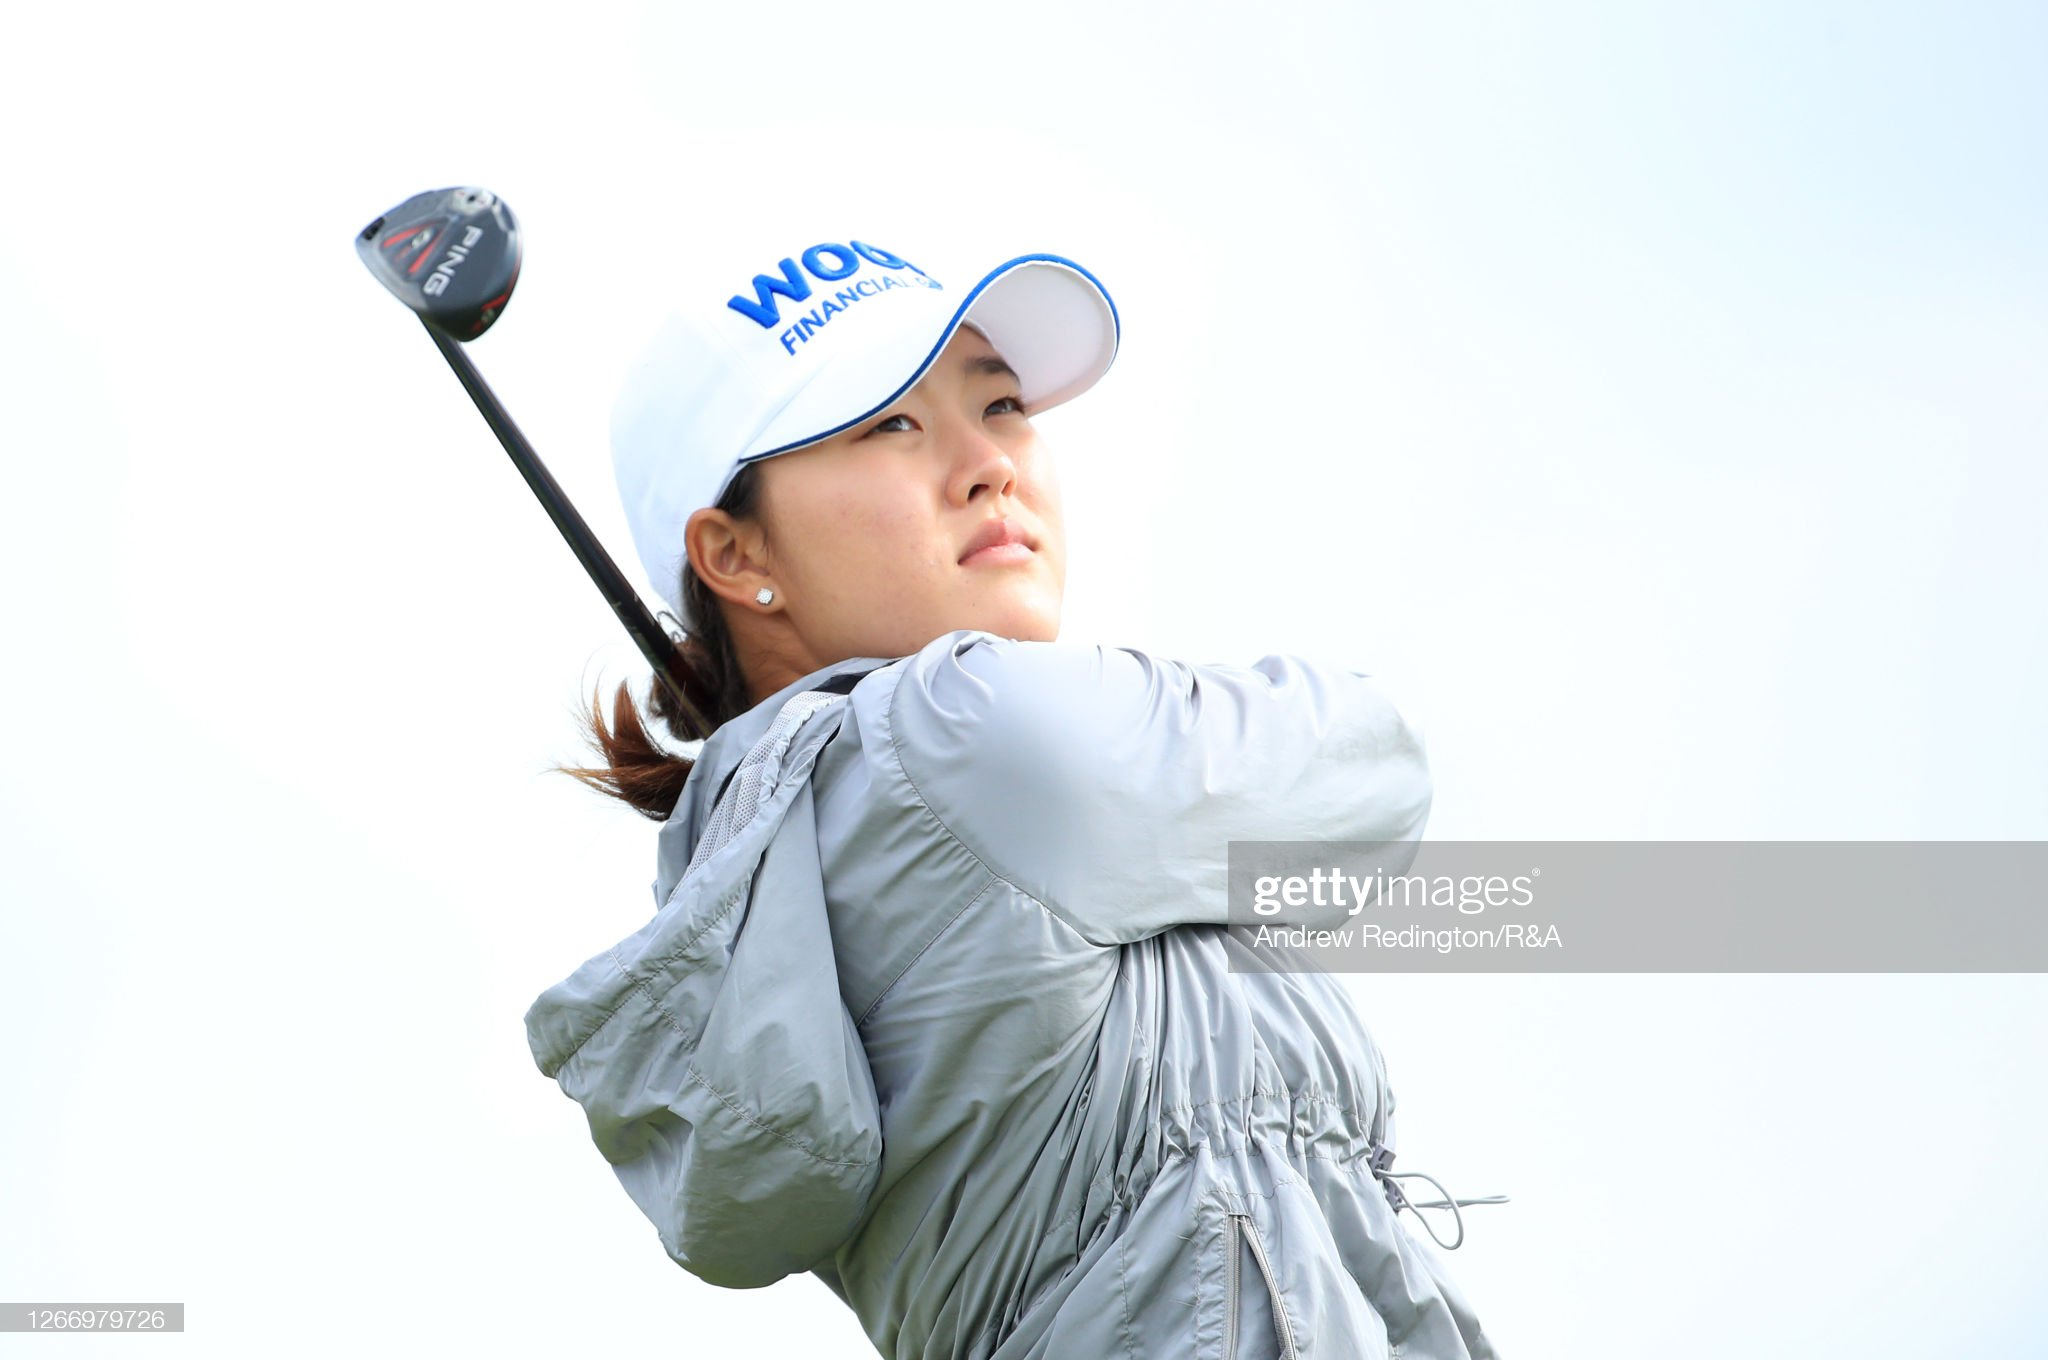 https://media.gettyimages.com/photos/jennifer-chang-of-the-united-states-of-america-plays-a-tee-shot-a-picture-id1266979726?s=2048x2048